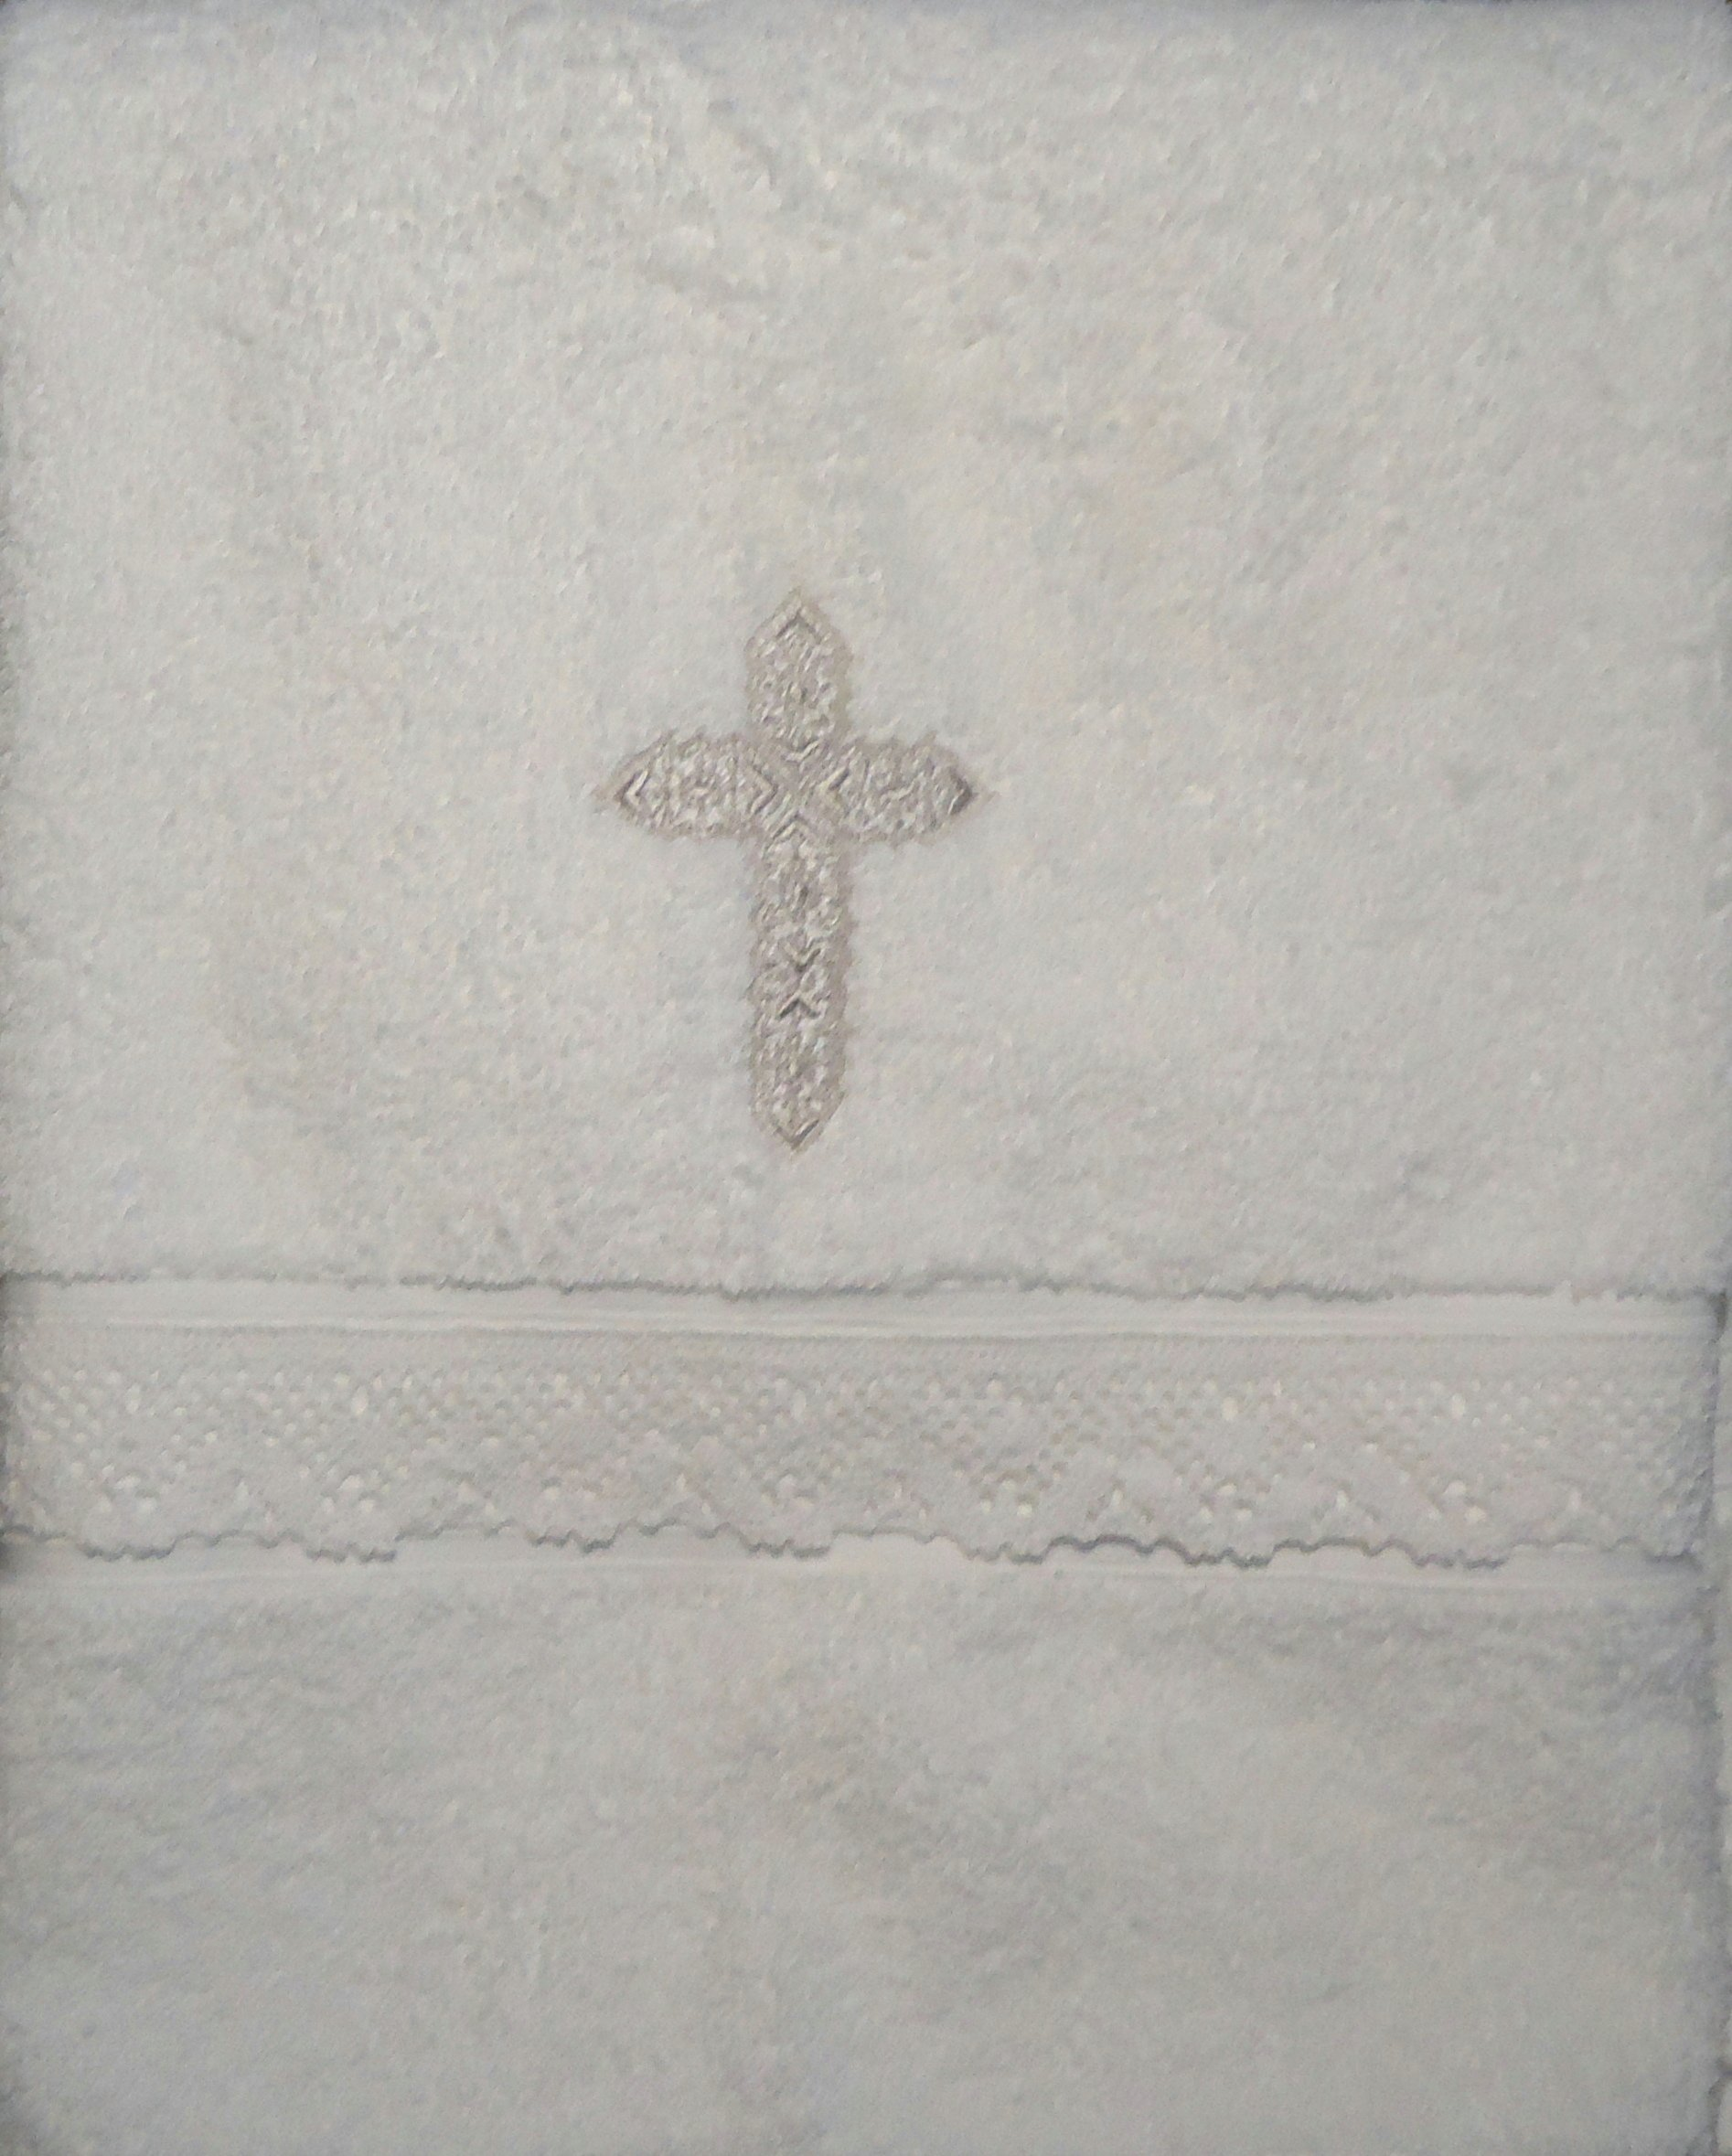 Integrity Designs Baby Baptism Towel with Cross and Lace by Integrity Designs